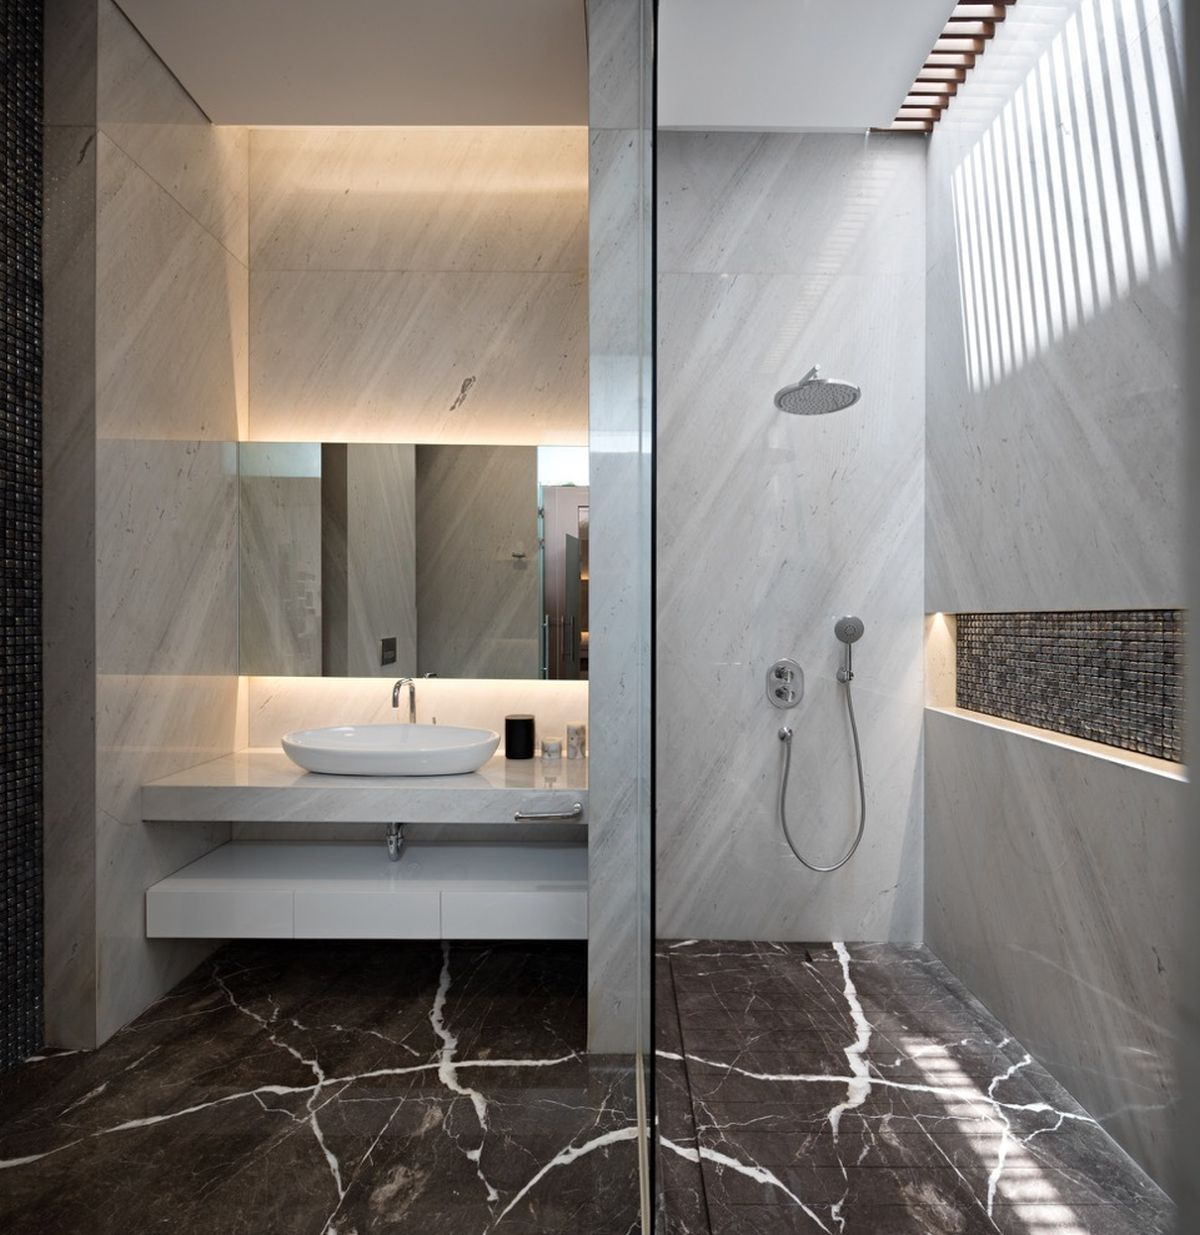 This bathroom has one of the most harmonious designs, featuring a marble floor and subtle accent lighting